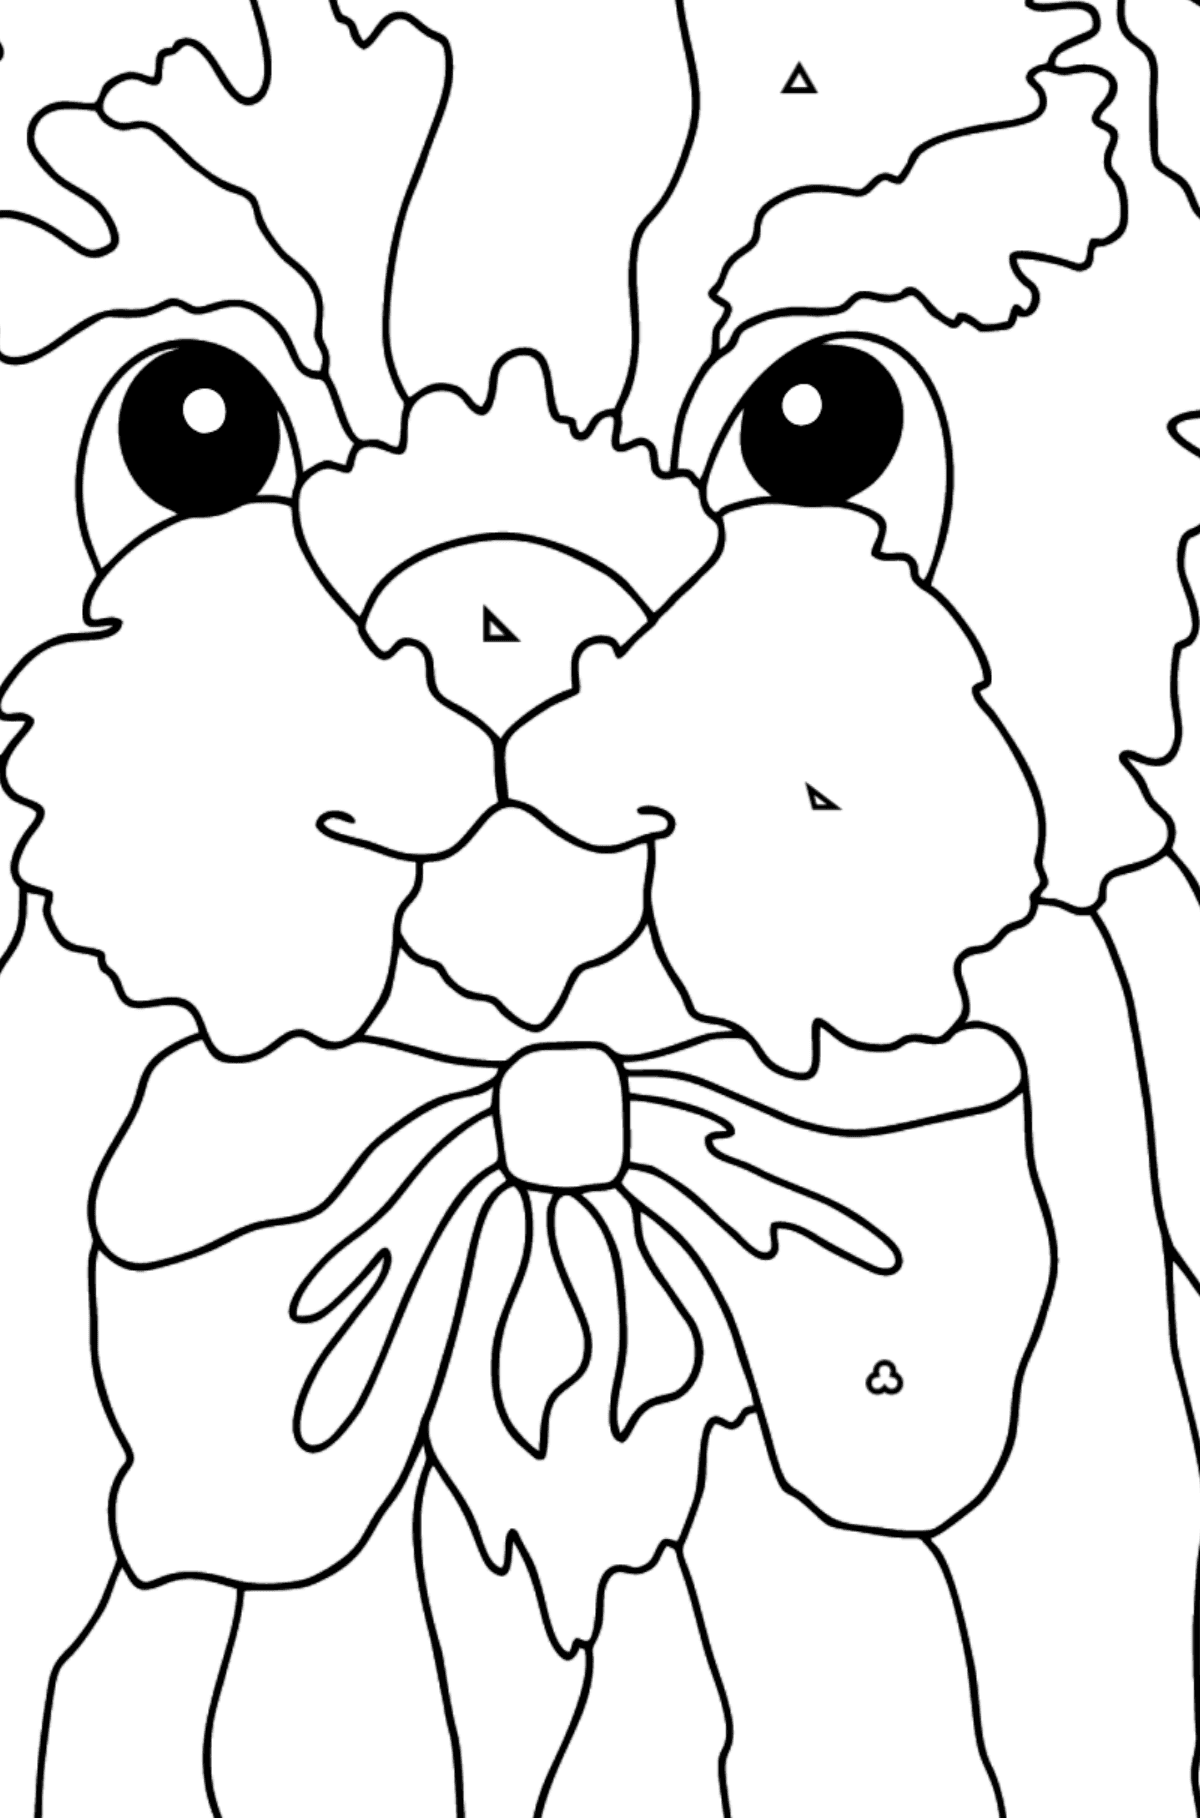 Coloring Page - A Young Fluffy Dog - Coloring by Geometric Shapes for Kids